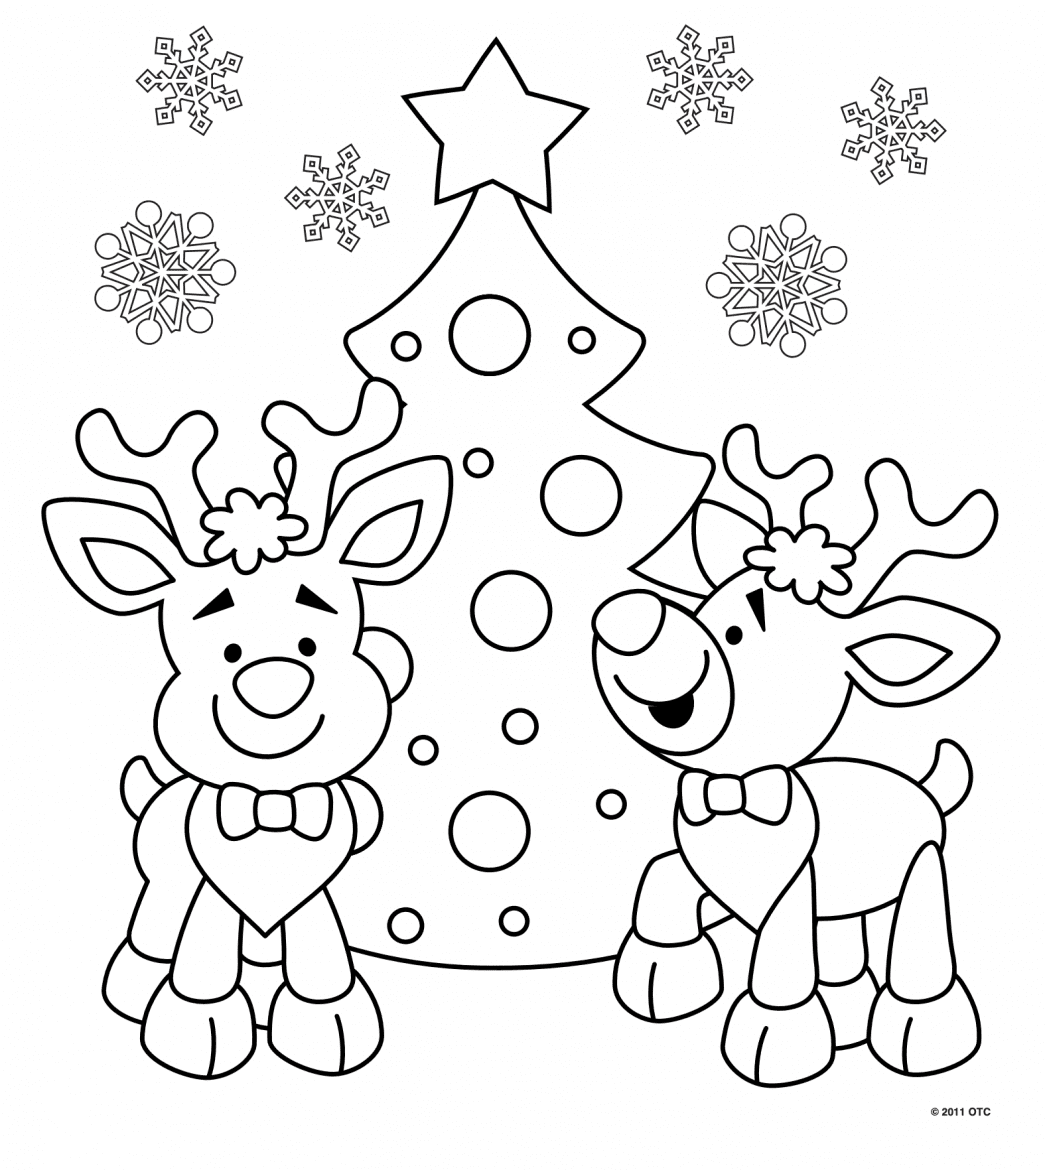 Printable Christmas Colouring Pages - The Organised Housewife